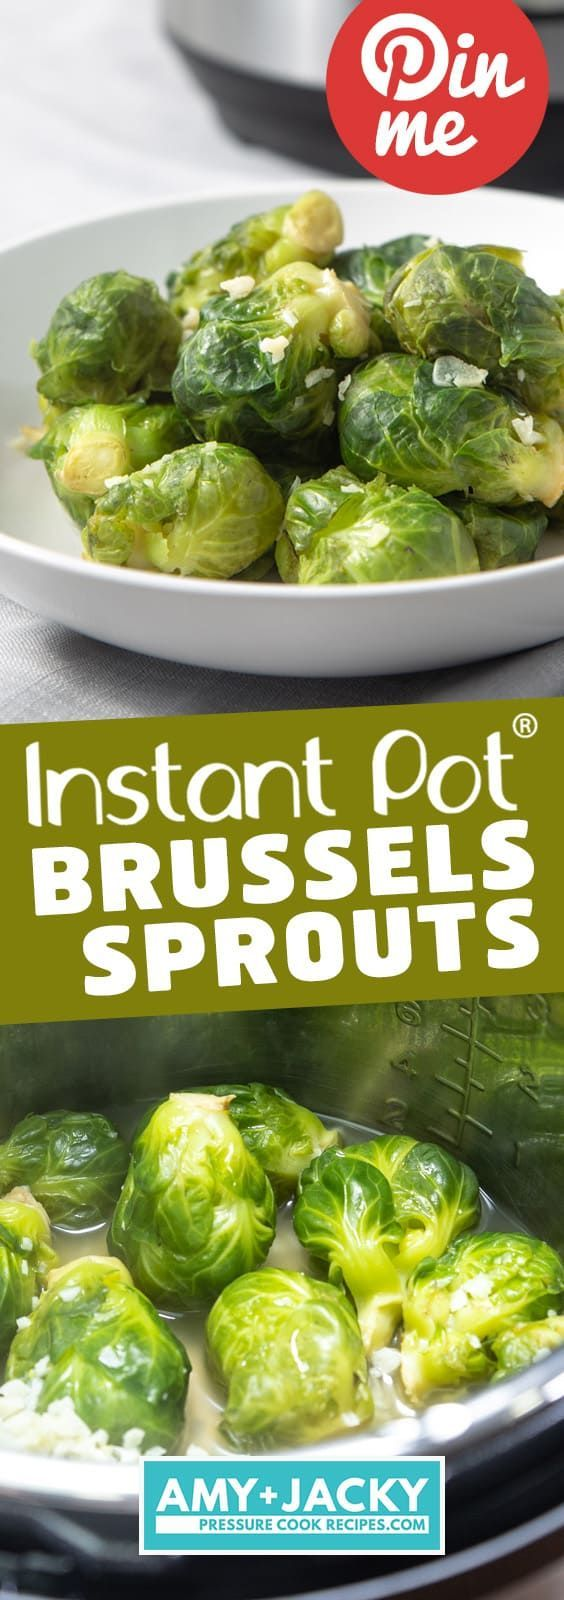 Instant Pot Brussels Sprouts | Pressure Cooker Brussels Sprouts | Instapot Bruss…